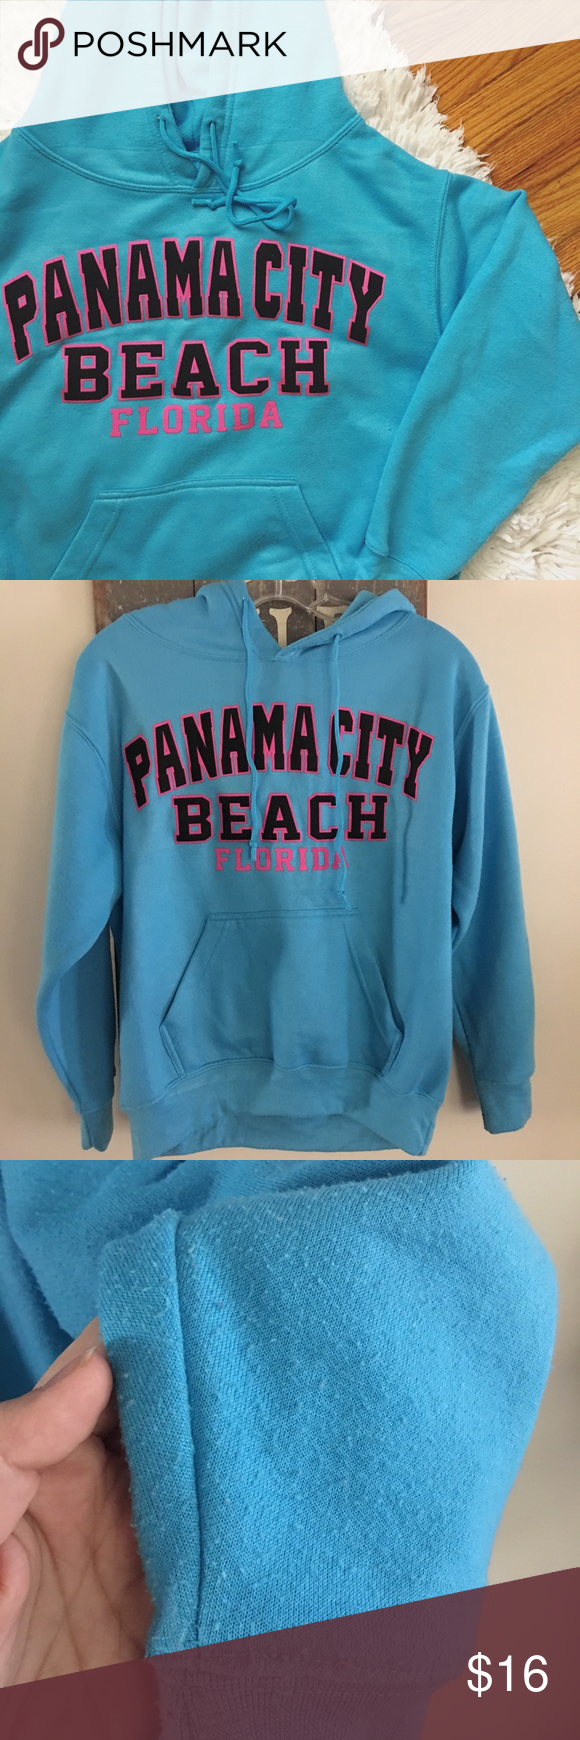 Panama City Beach Florida Hoodie Cute Hoodie Purchased In Panama City Beach Fl Size Small True To S Cute Hoodie Sweatshirts Hoodie Panama City Beach Florida